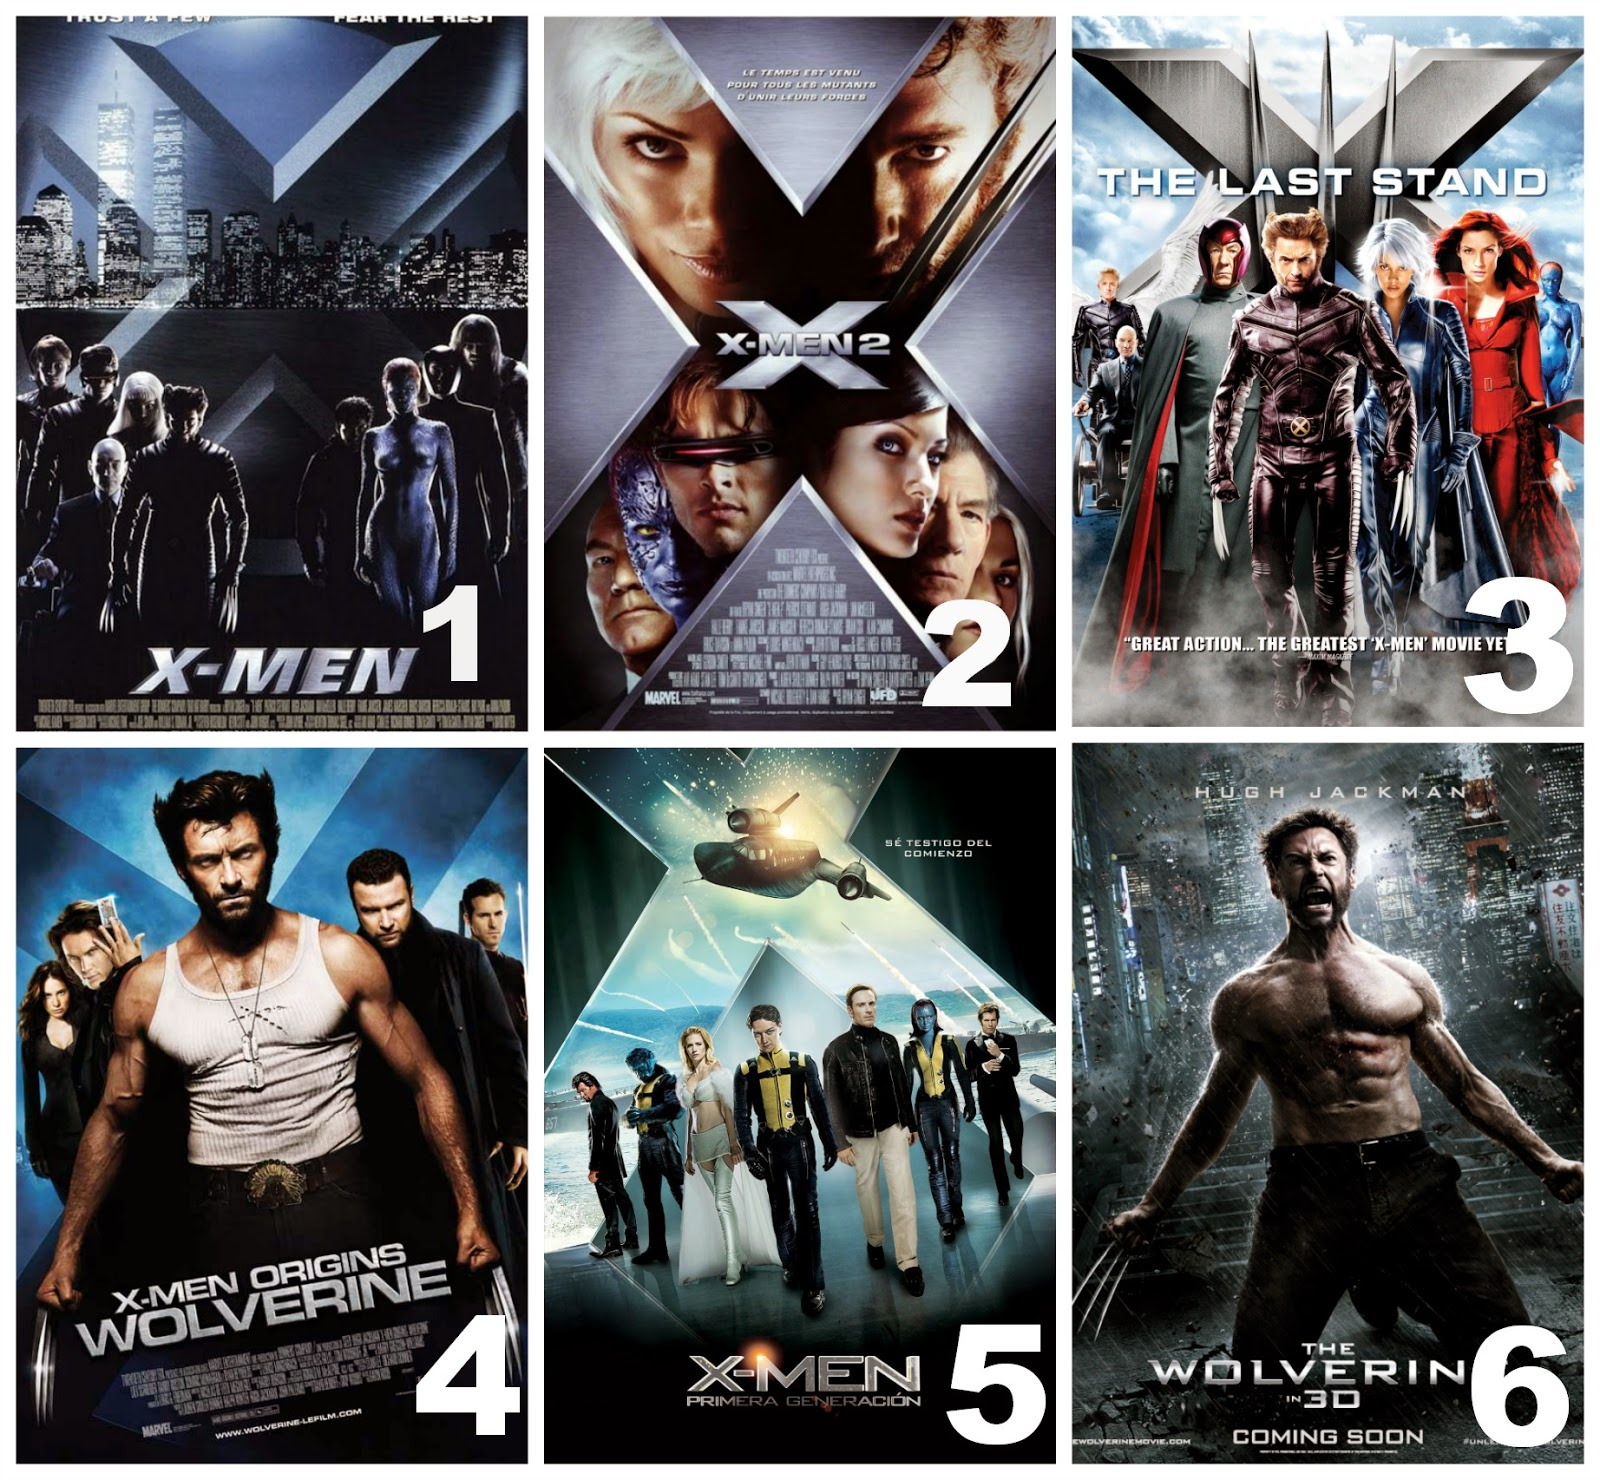 sarahs spiel a guide to the xmen movies